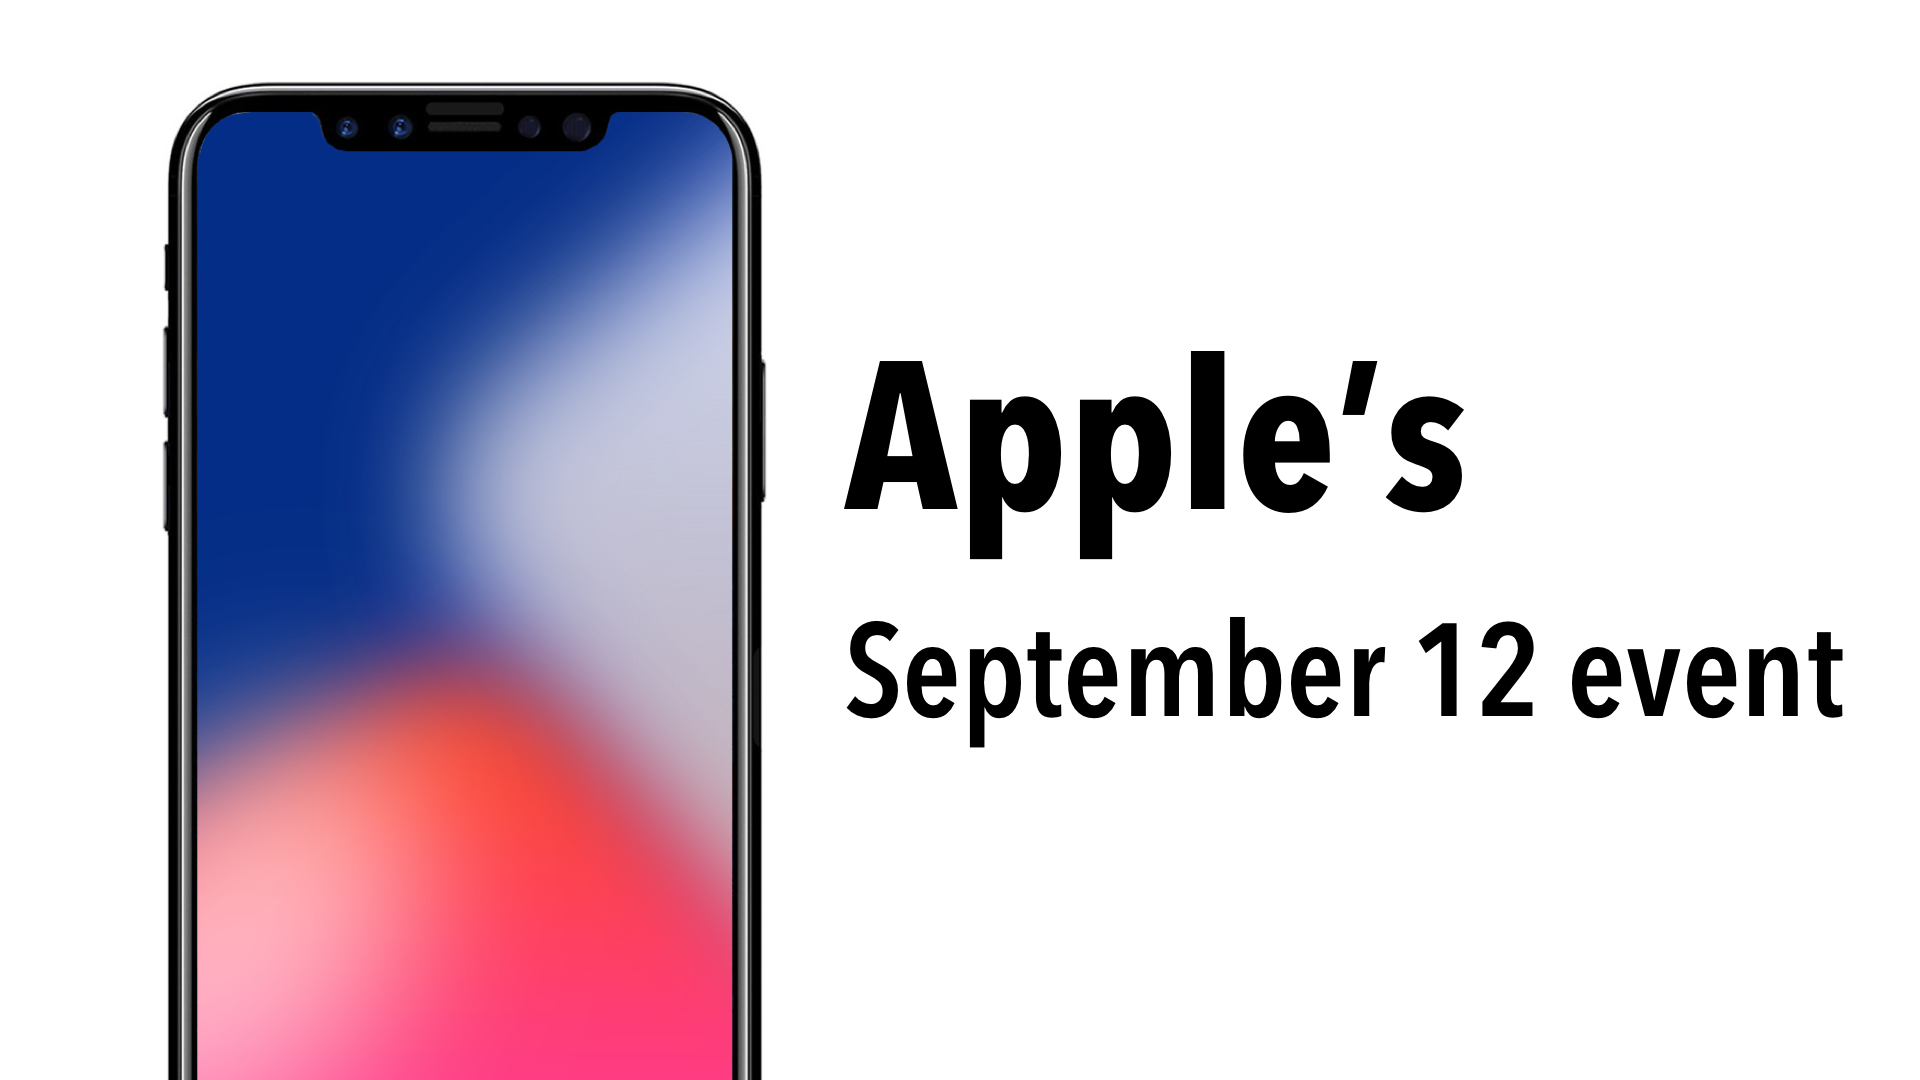 apple sent out invitations today to what we can only assume is this years iphone event which will be taking place on september 12 this year